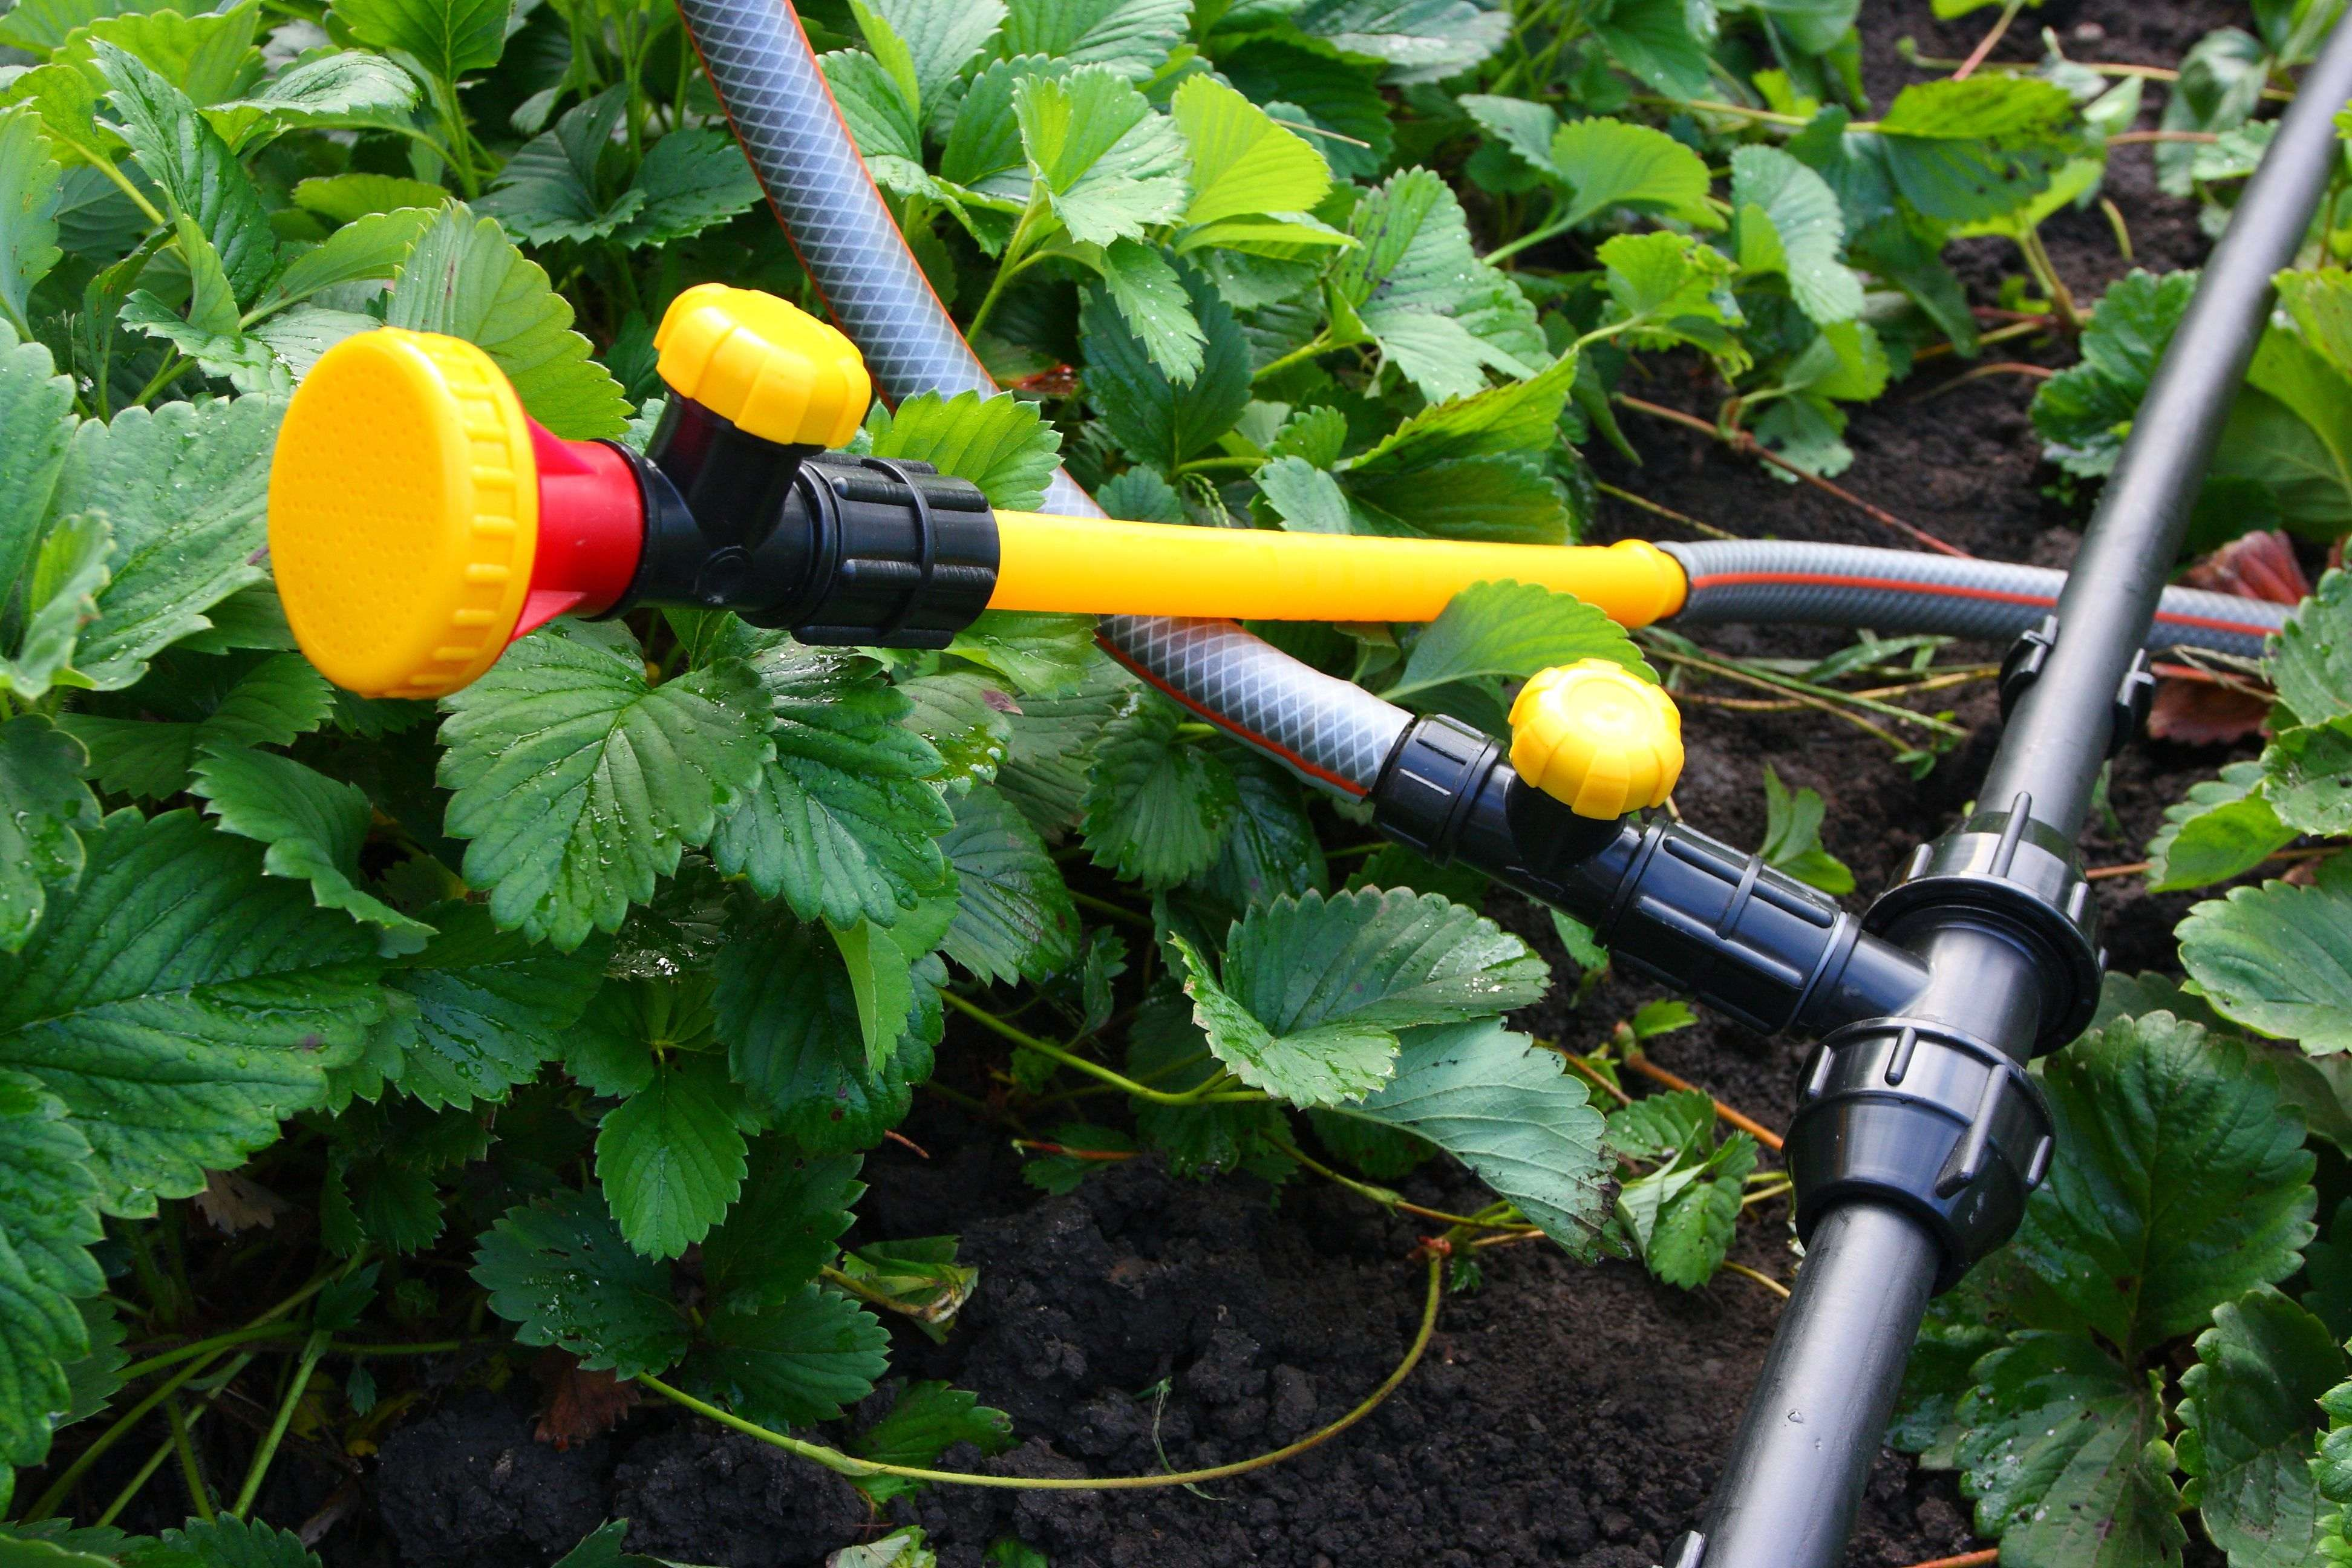 How to choose your watering equipment?